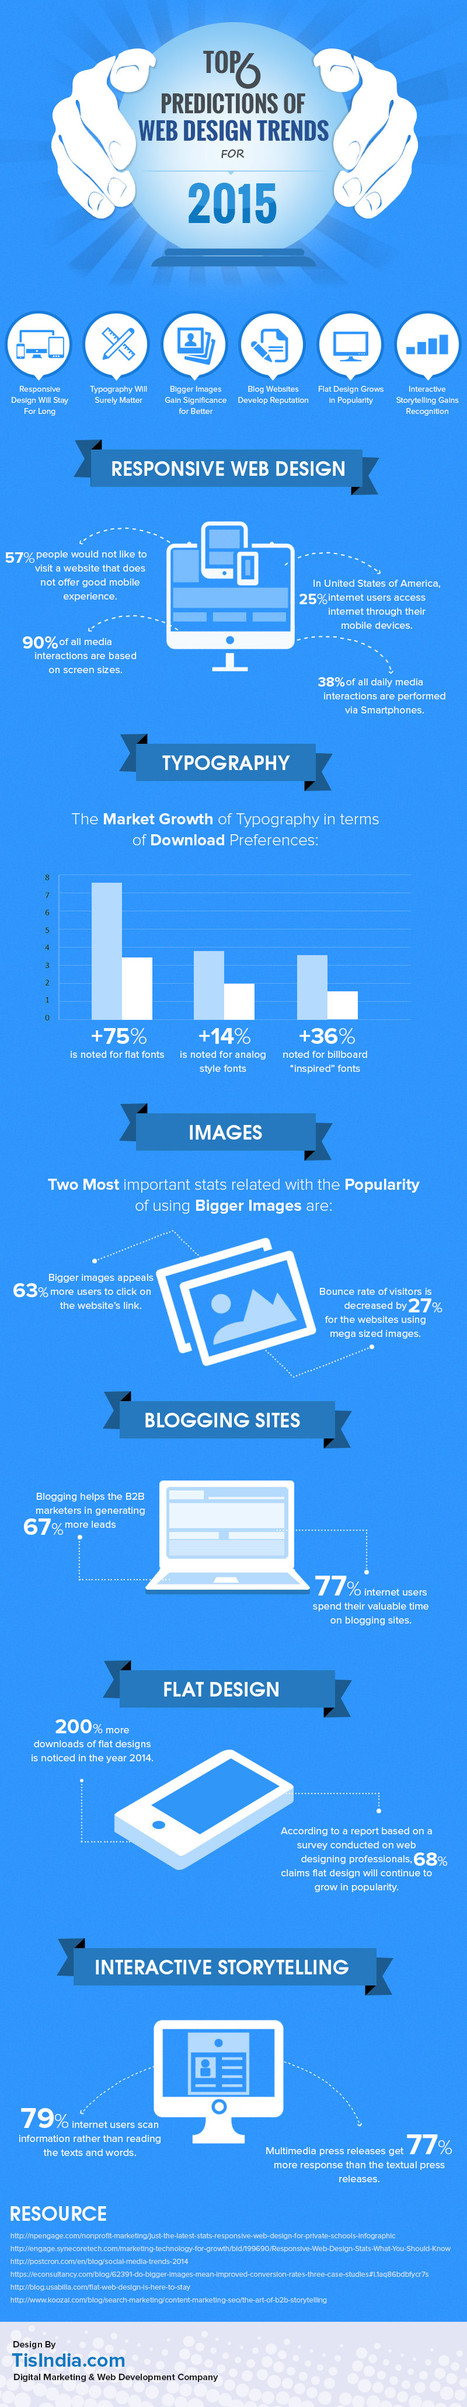 Web Design Trends 2015 [Infographic] | digital marketing strategy | Scoop.it